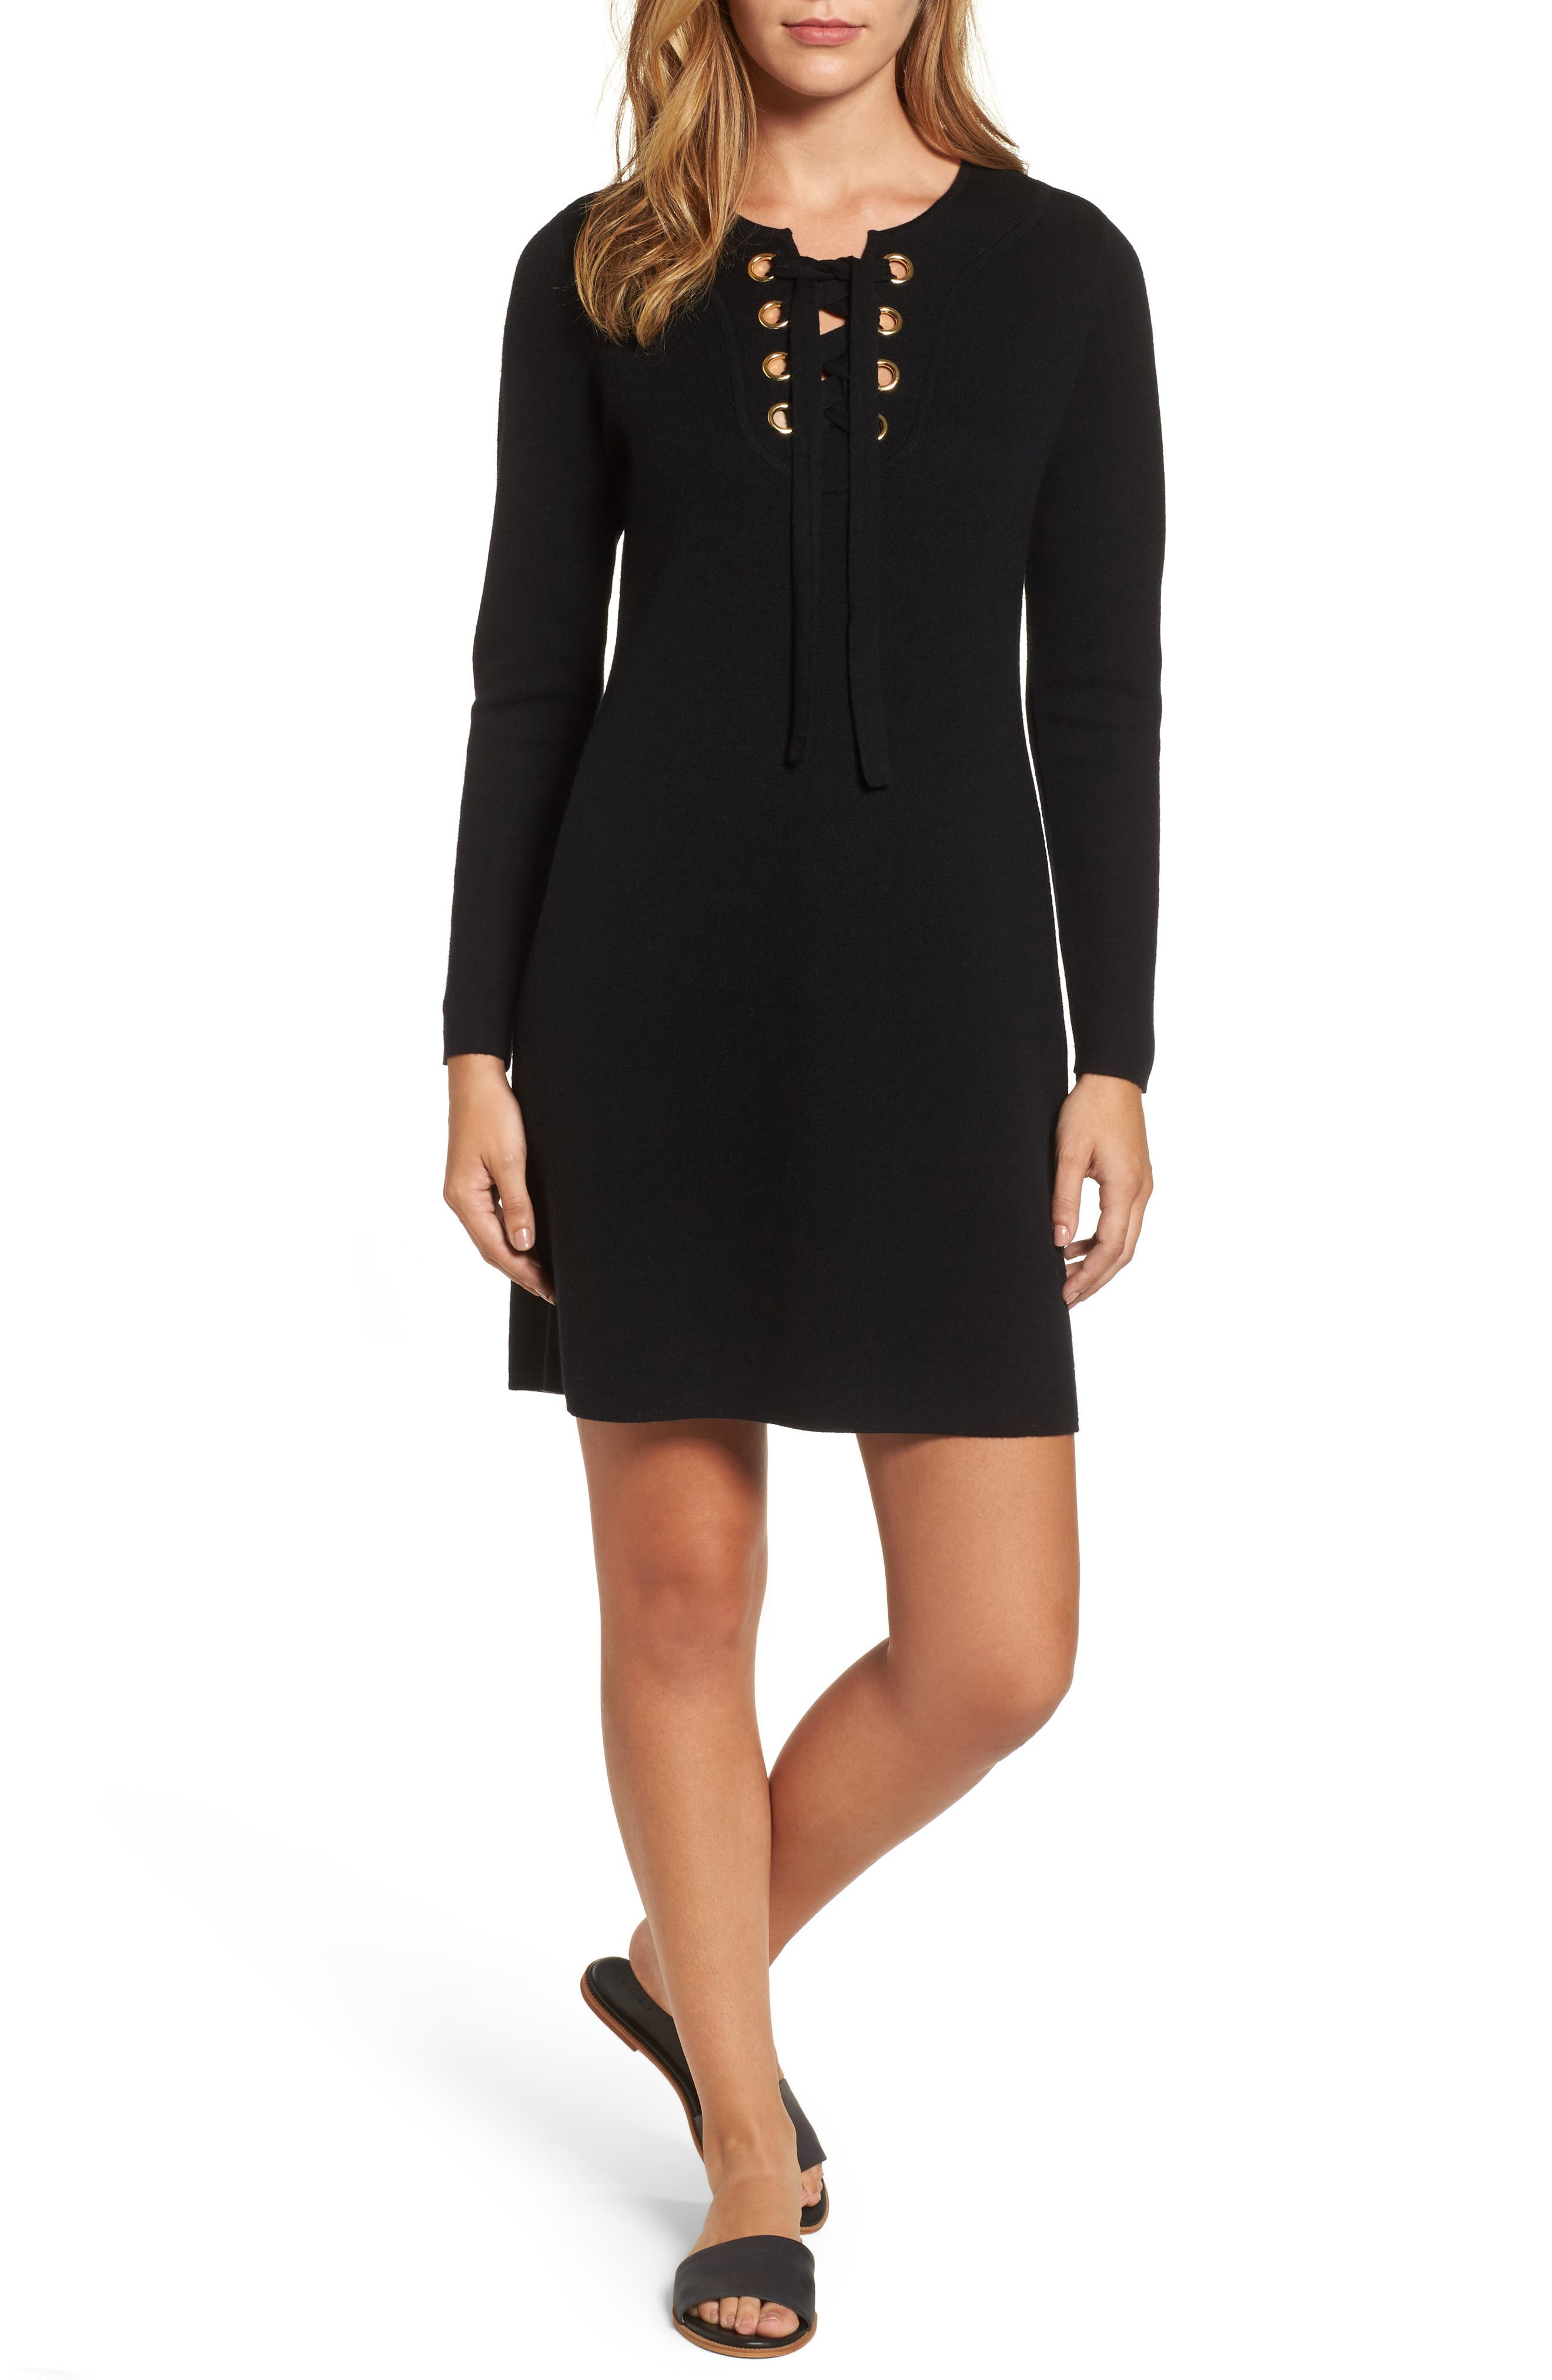 Alternate Image 1 Selected - vineyard vines Lace-Up Sweater Dress